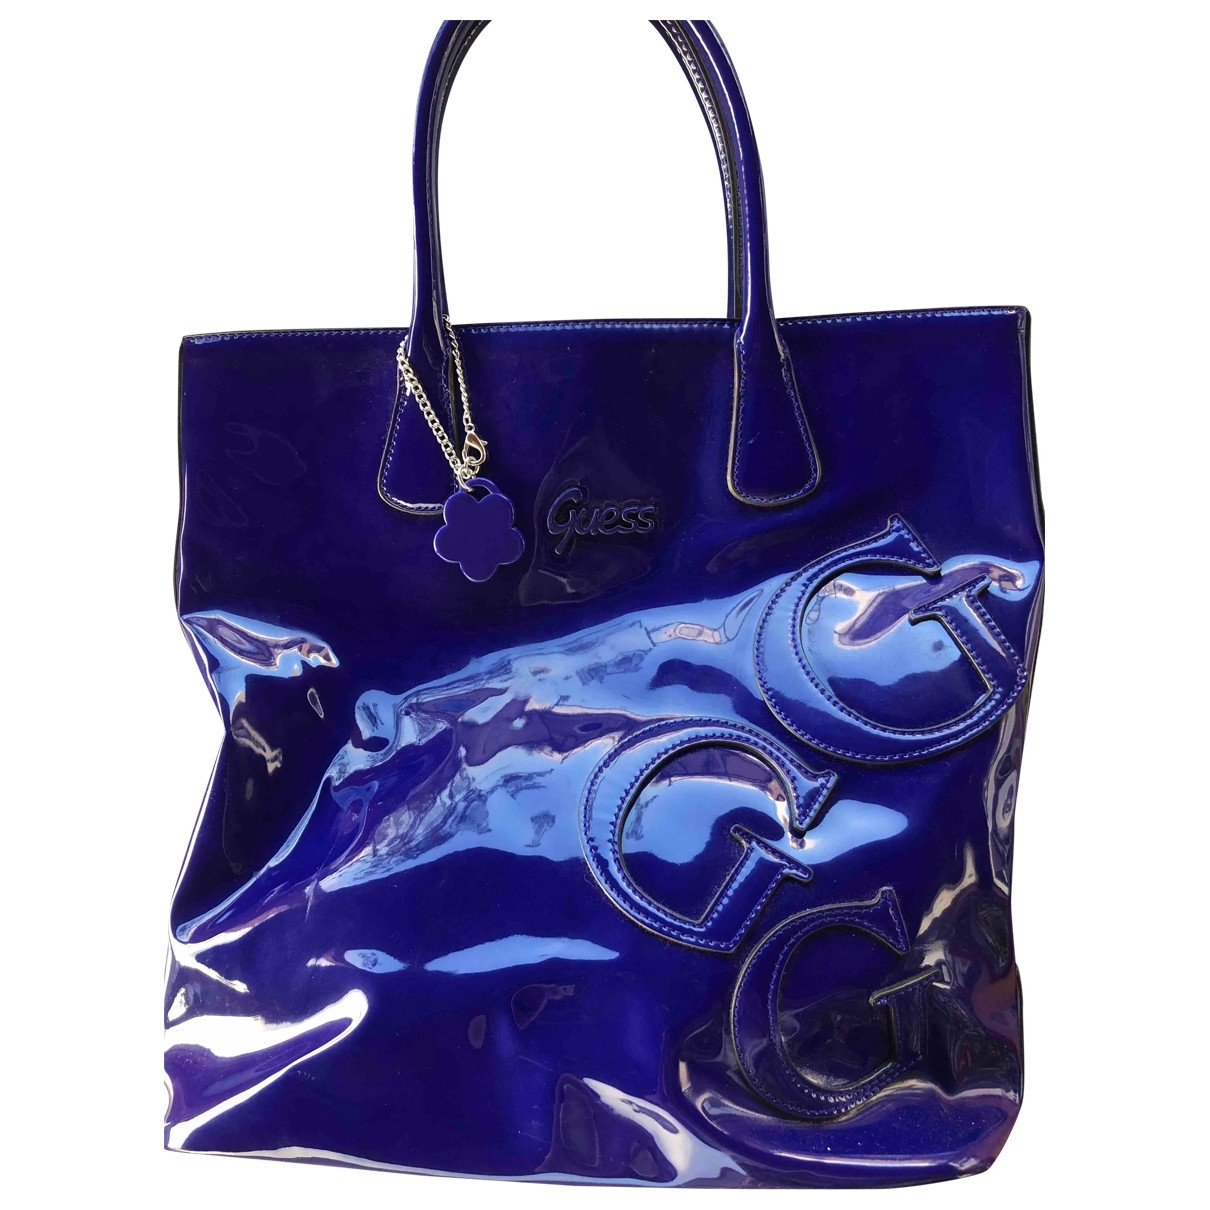 Guess \N Blue Patent leather handbag for Women \N